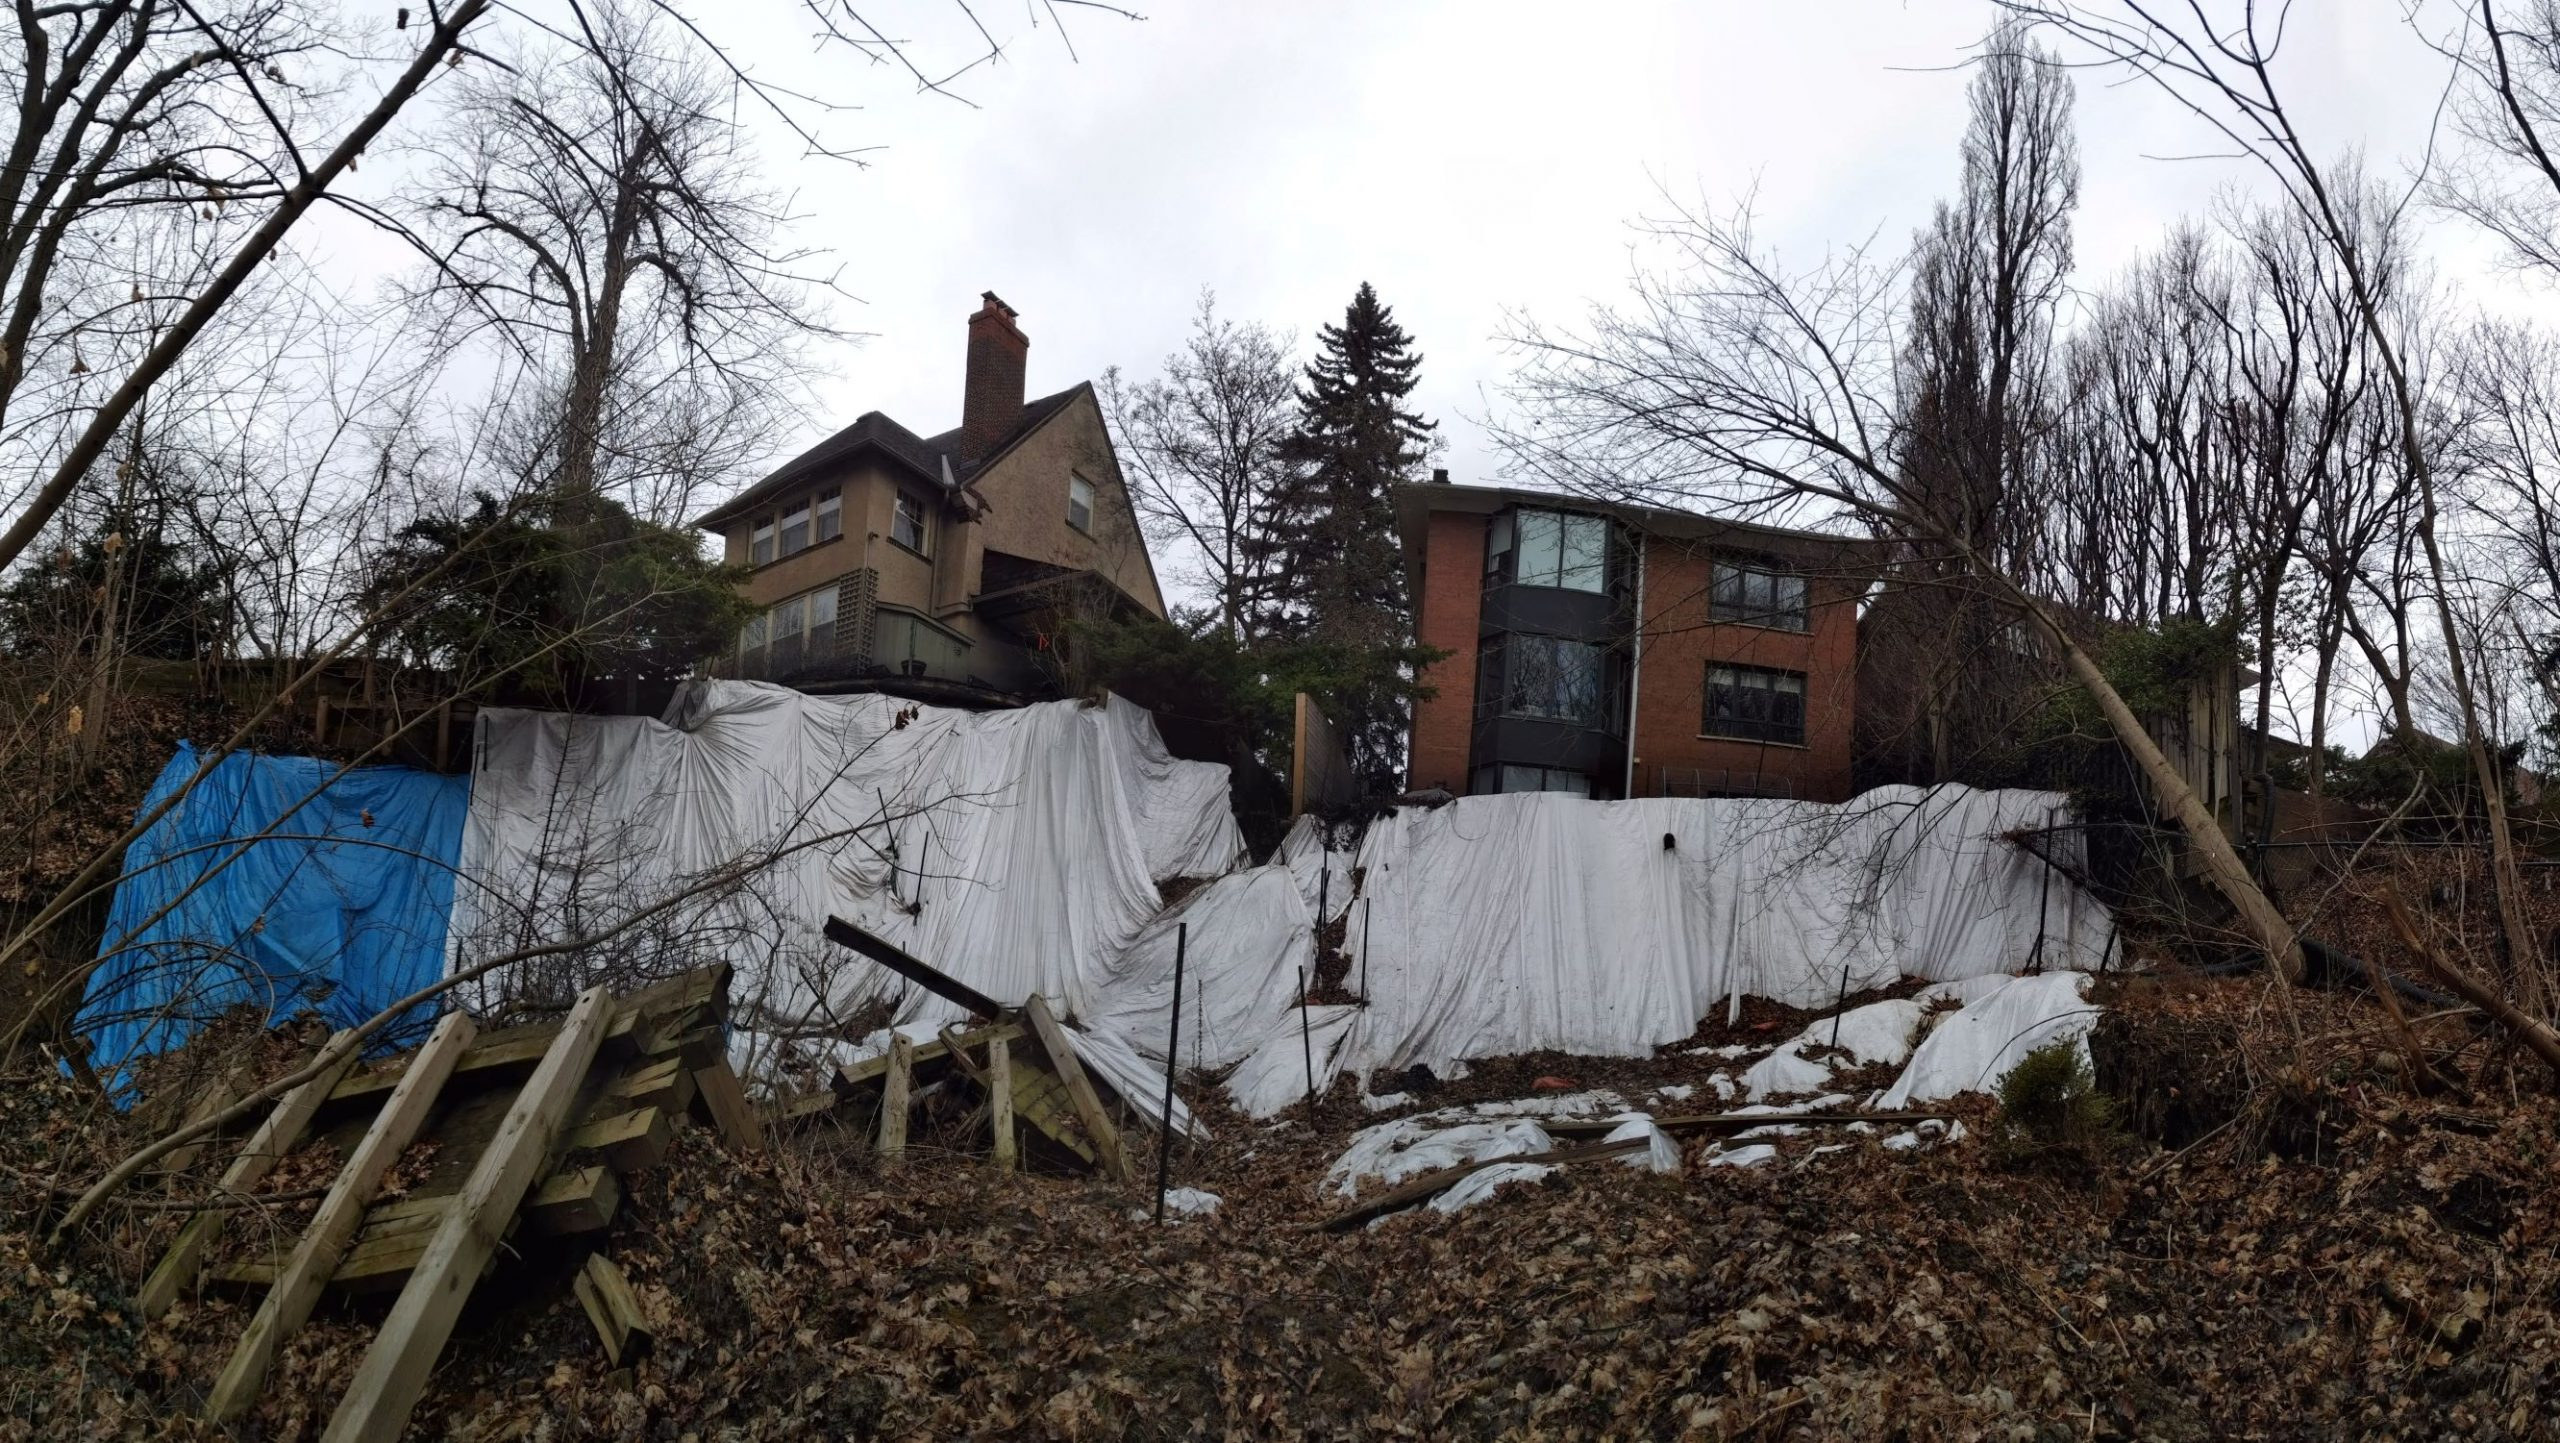 Tarps were installed by TRCA staff to prevent or reduce erosion along the slope face as an interim measure while a permanent solution was being developed.